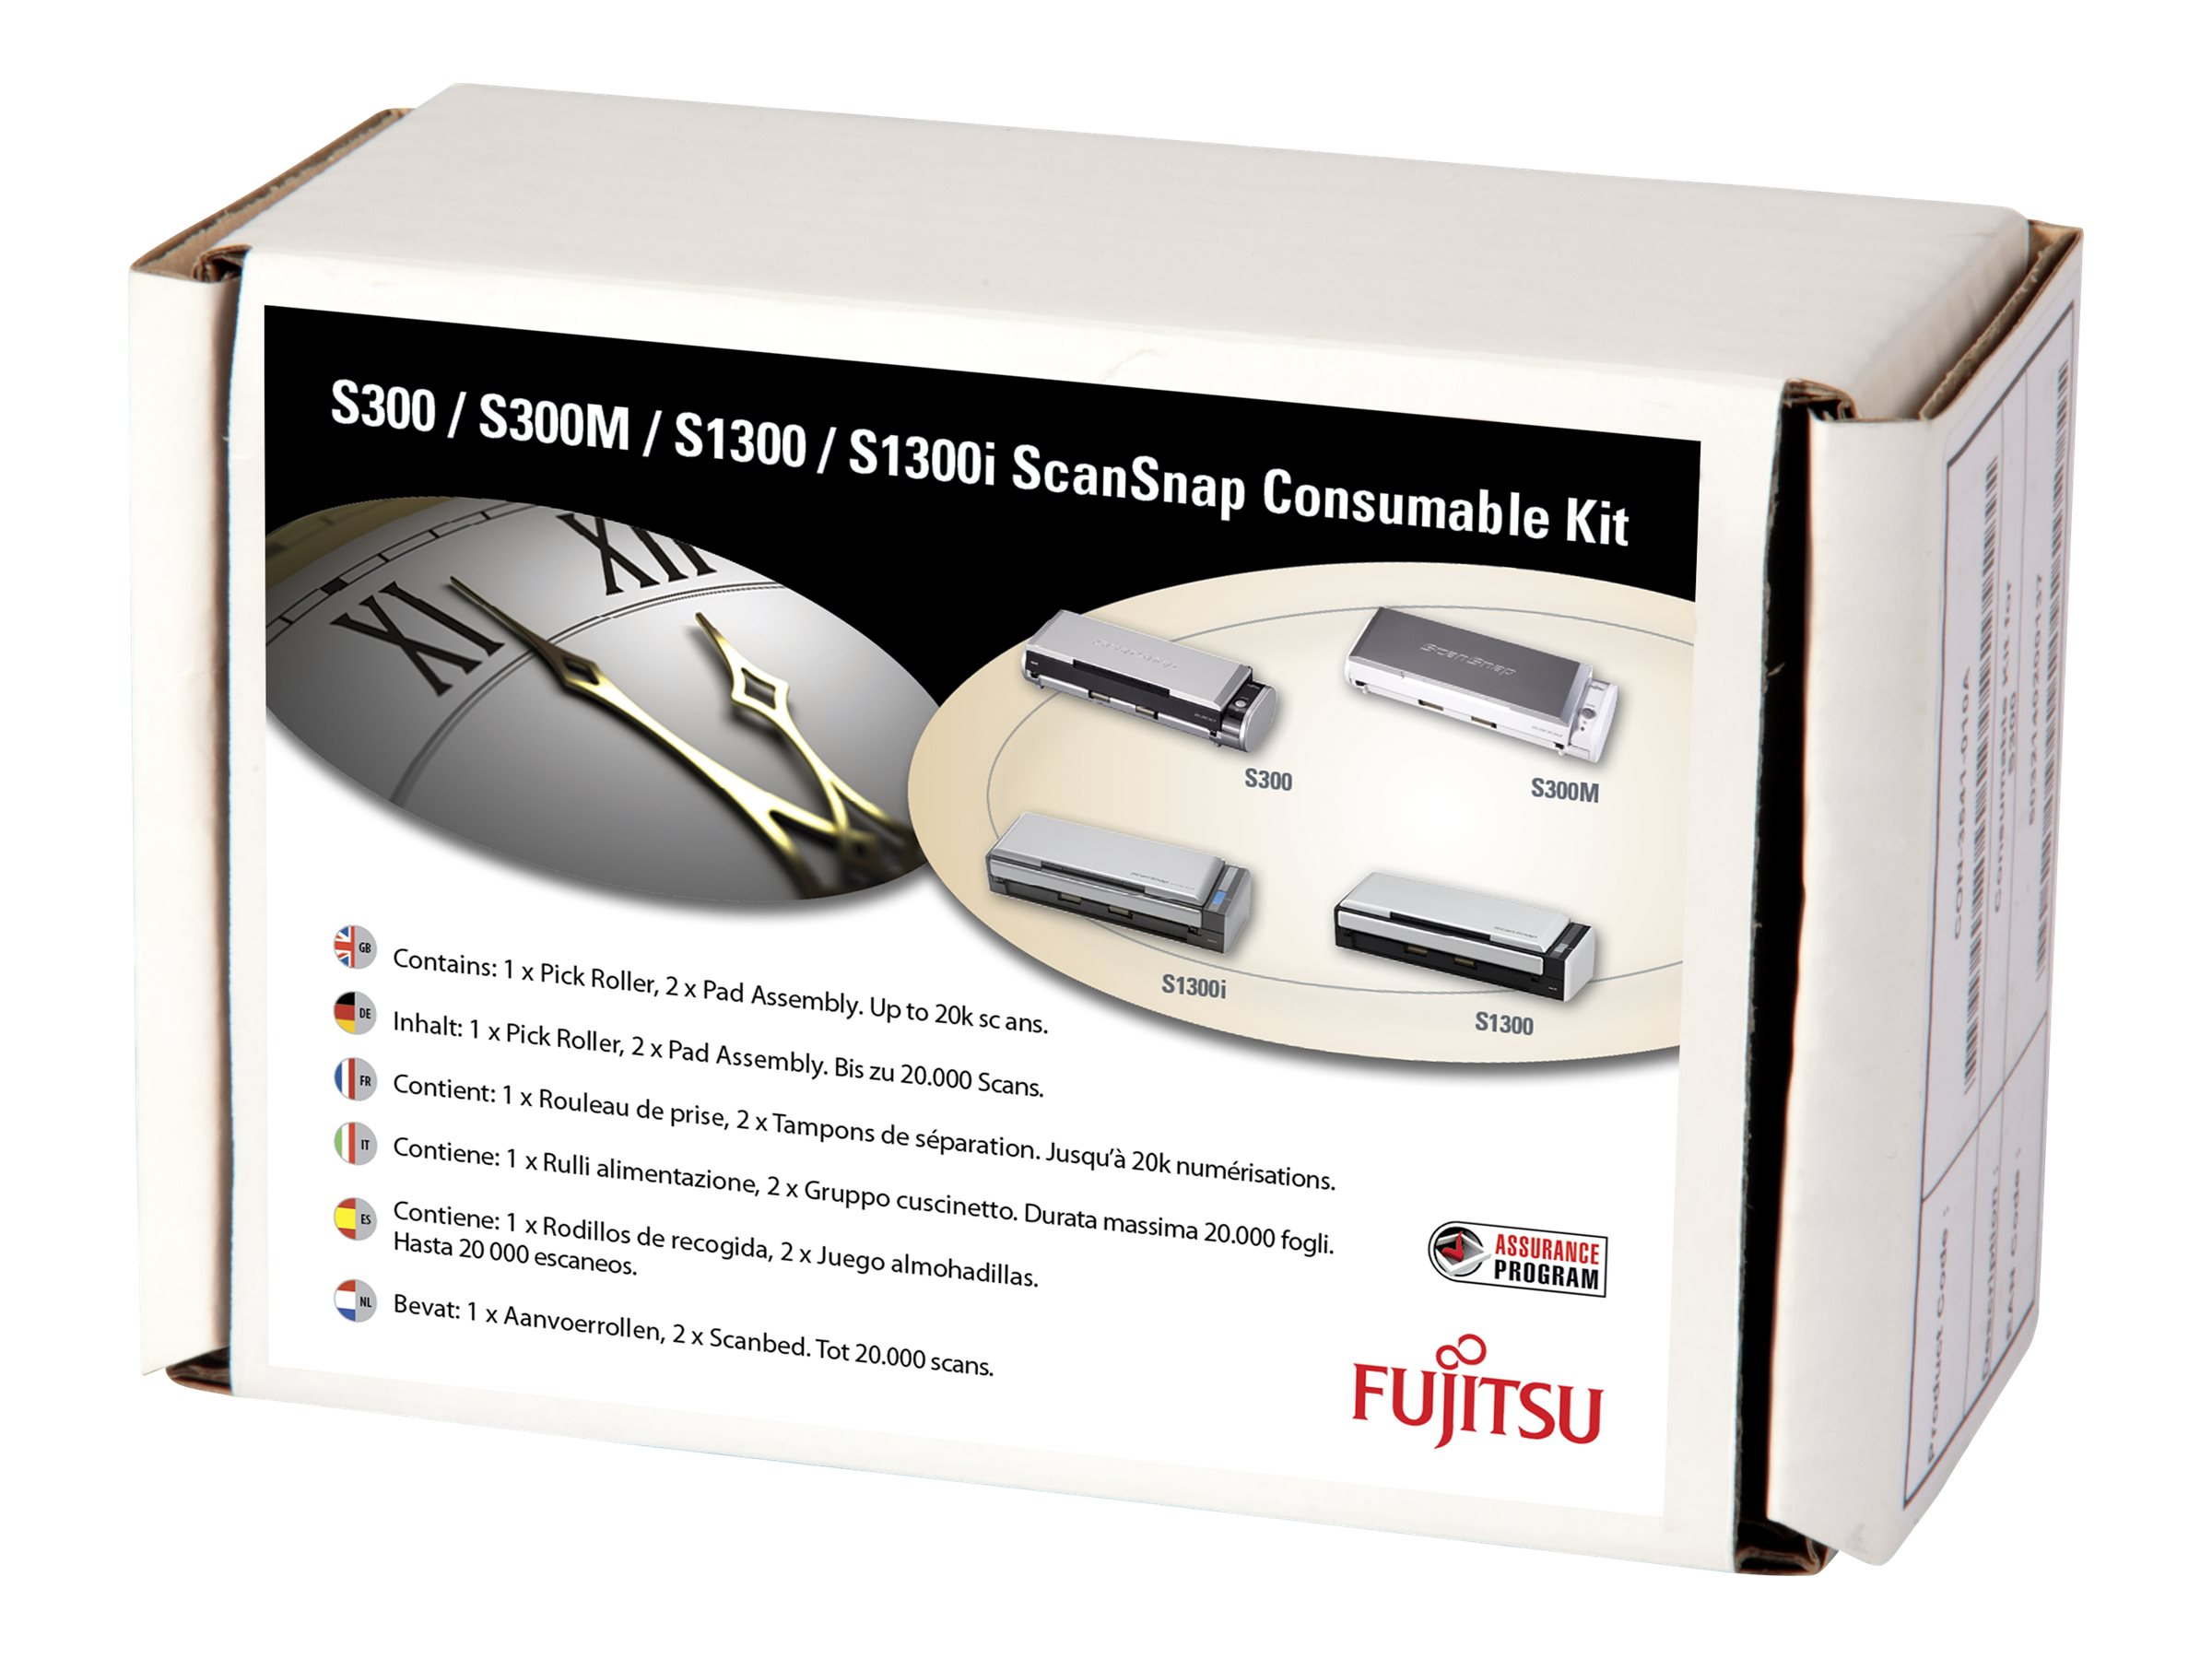 Fujitsu Consumable Kit - Scanner - Verbrauchsmaterialienkit - für ScanSnap S1300i, S1300i Deluxe, S300